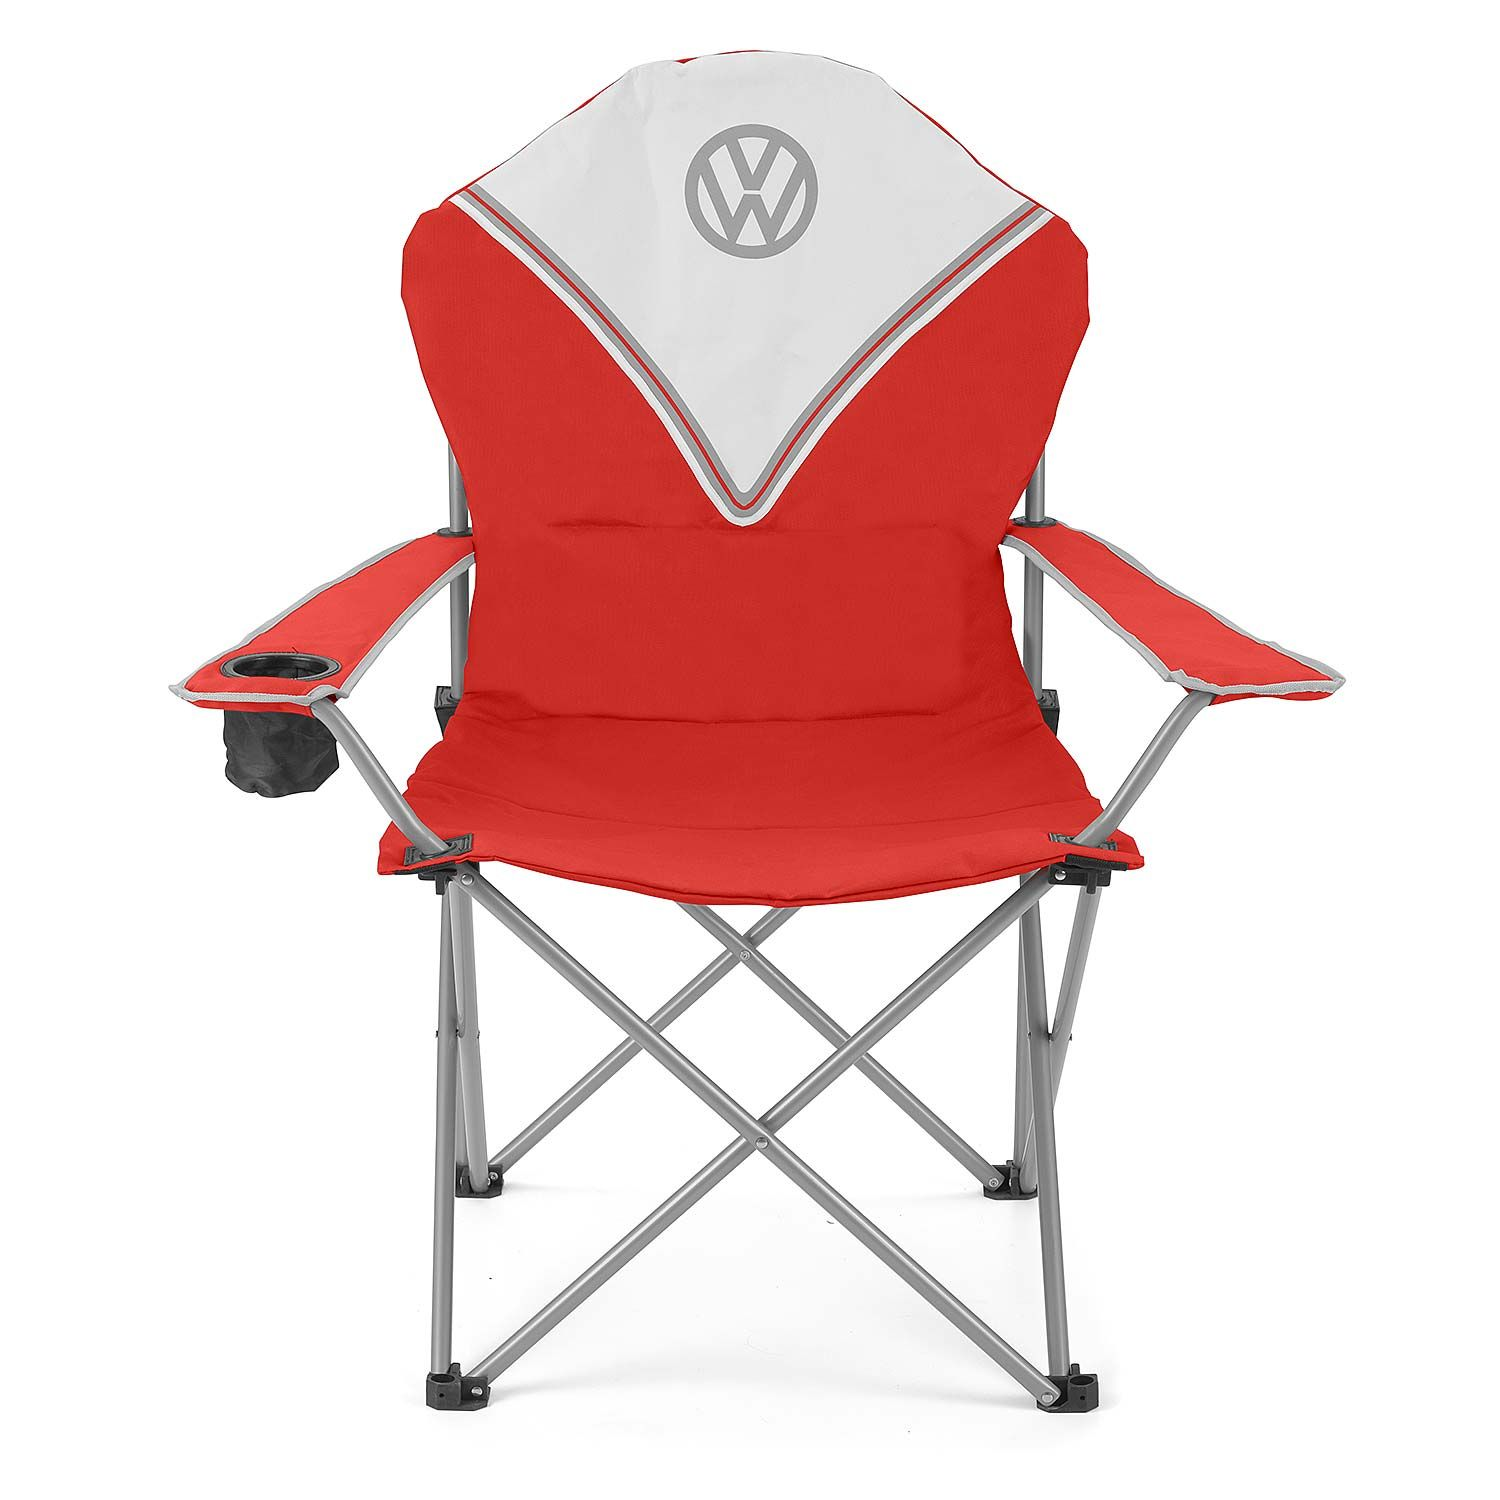 VW Deluxe Padded Red Chair